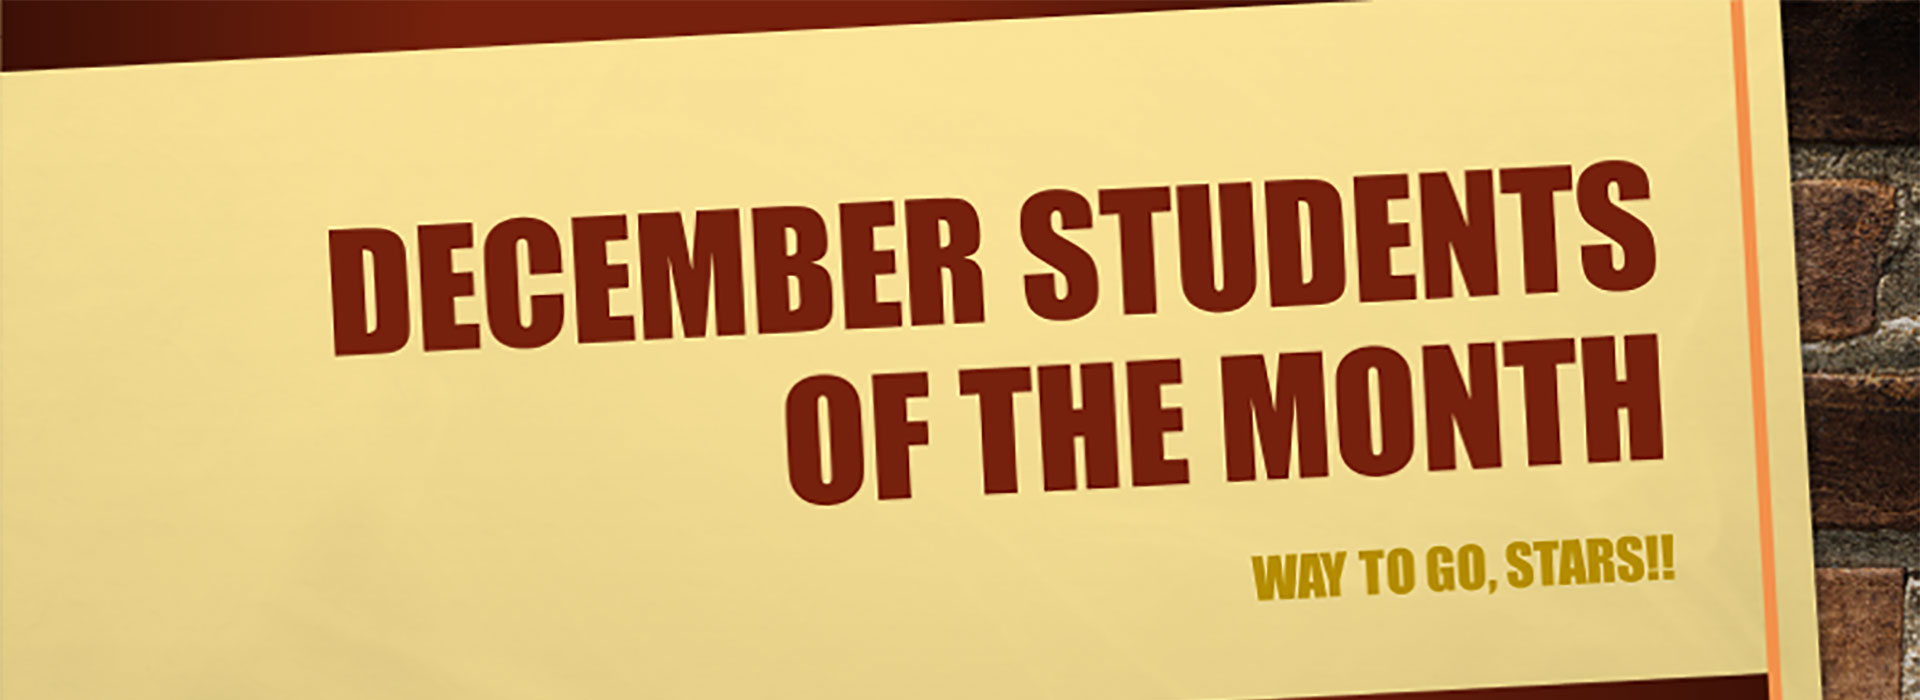 Banner reading December Student of the Month